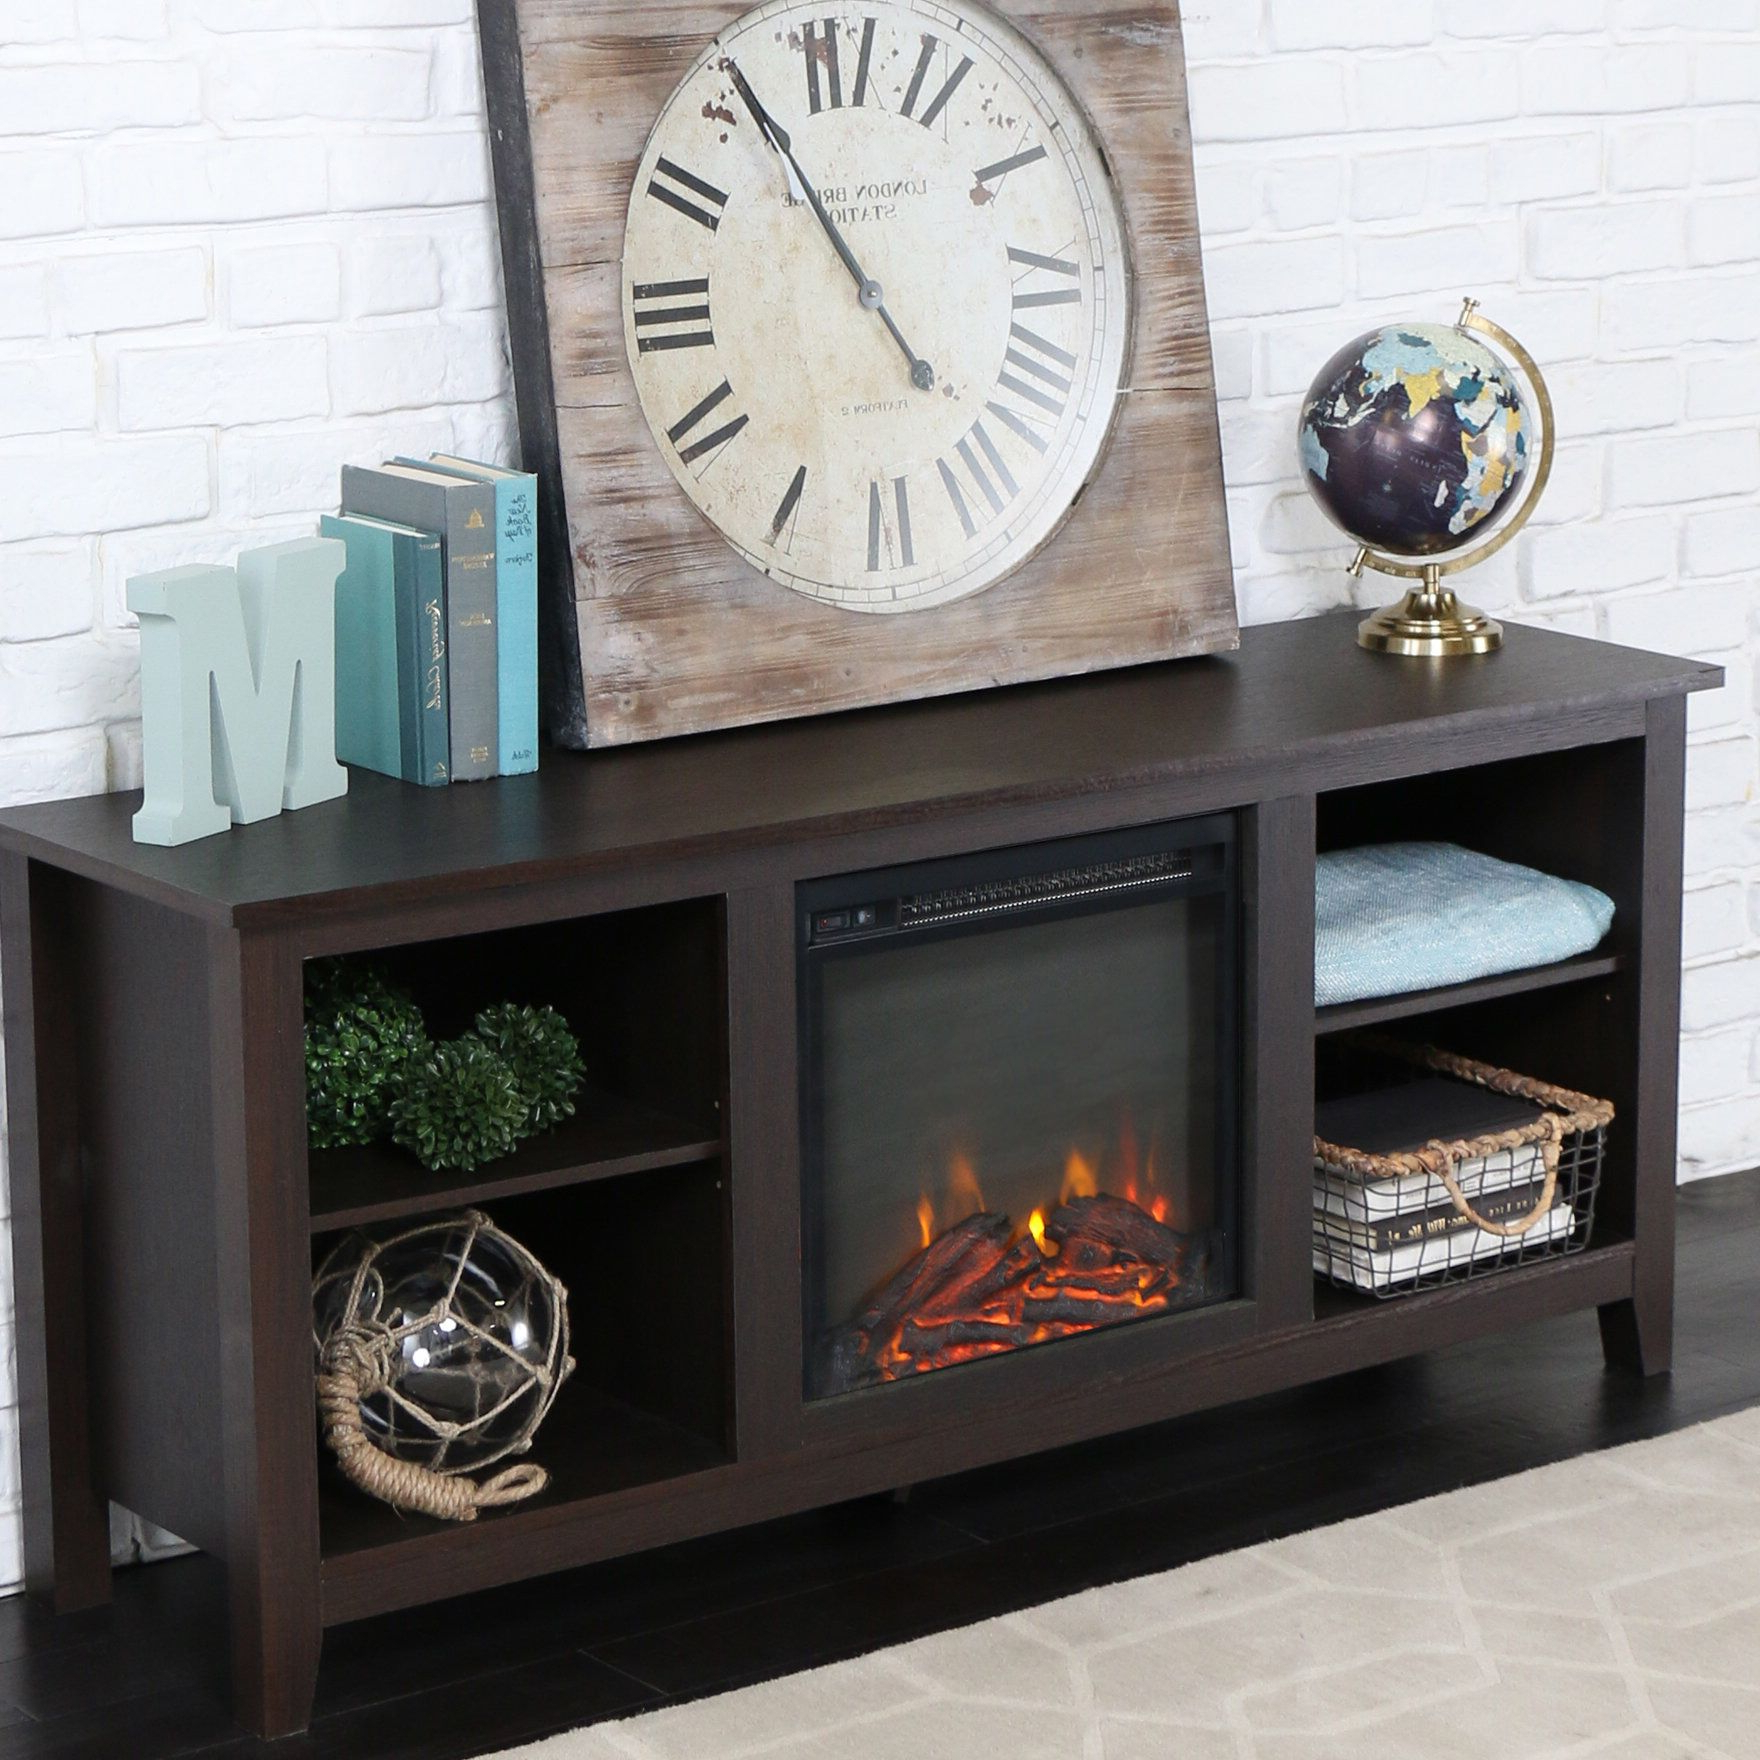 """Newest Twin Star Home Terryville Barn Door Tv Stands For Sunbury Tv Stand For Tvs Up To 65"""" With Fireplace Included (View 3 of 10)"""